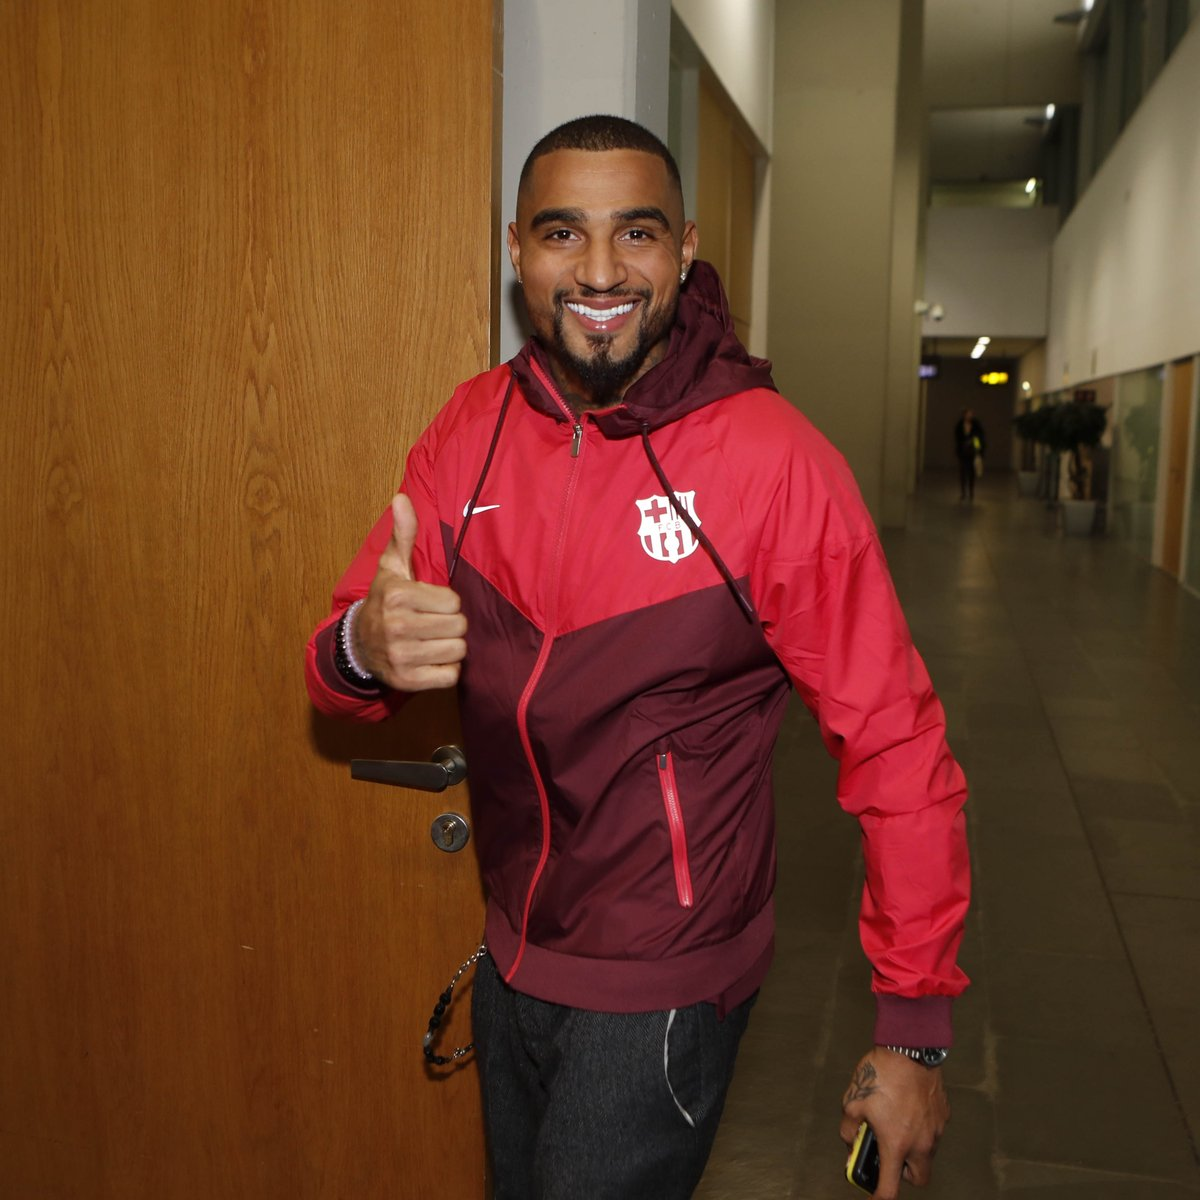 🔵🔴 @KPBofficial will be presented on Tuesday, 22 January, with the following events (all times CET): -11.30am, contract signing. -12.15pm, photo session on the field at Camp Nou. -1.00pm, press conference. LIVE > http://www.fcbarcelona.com #EnjoyPrince